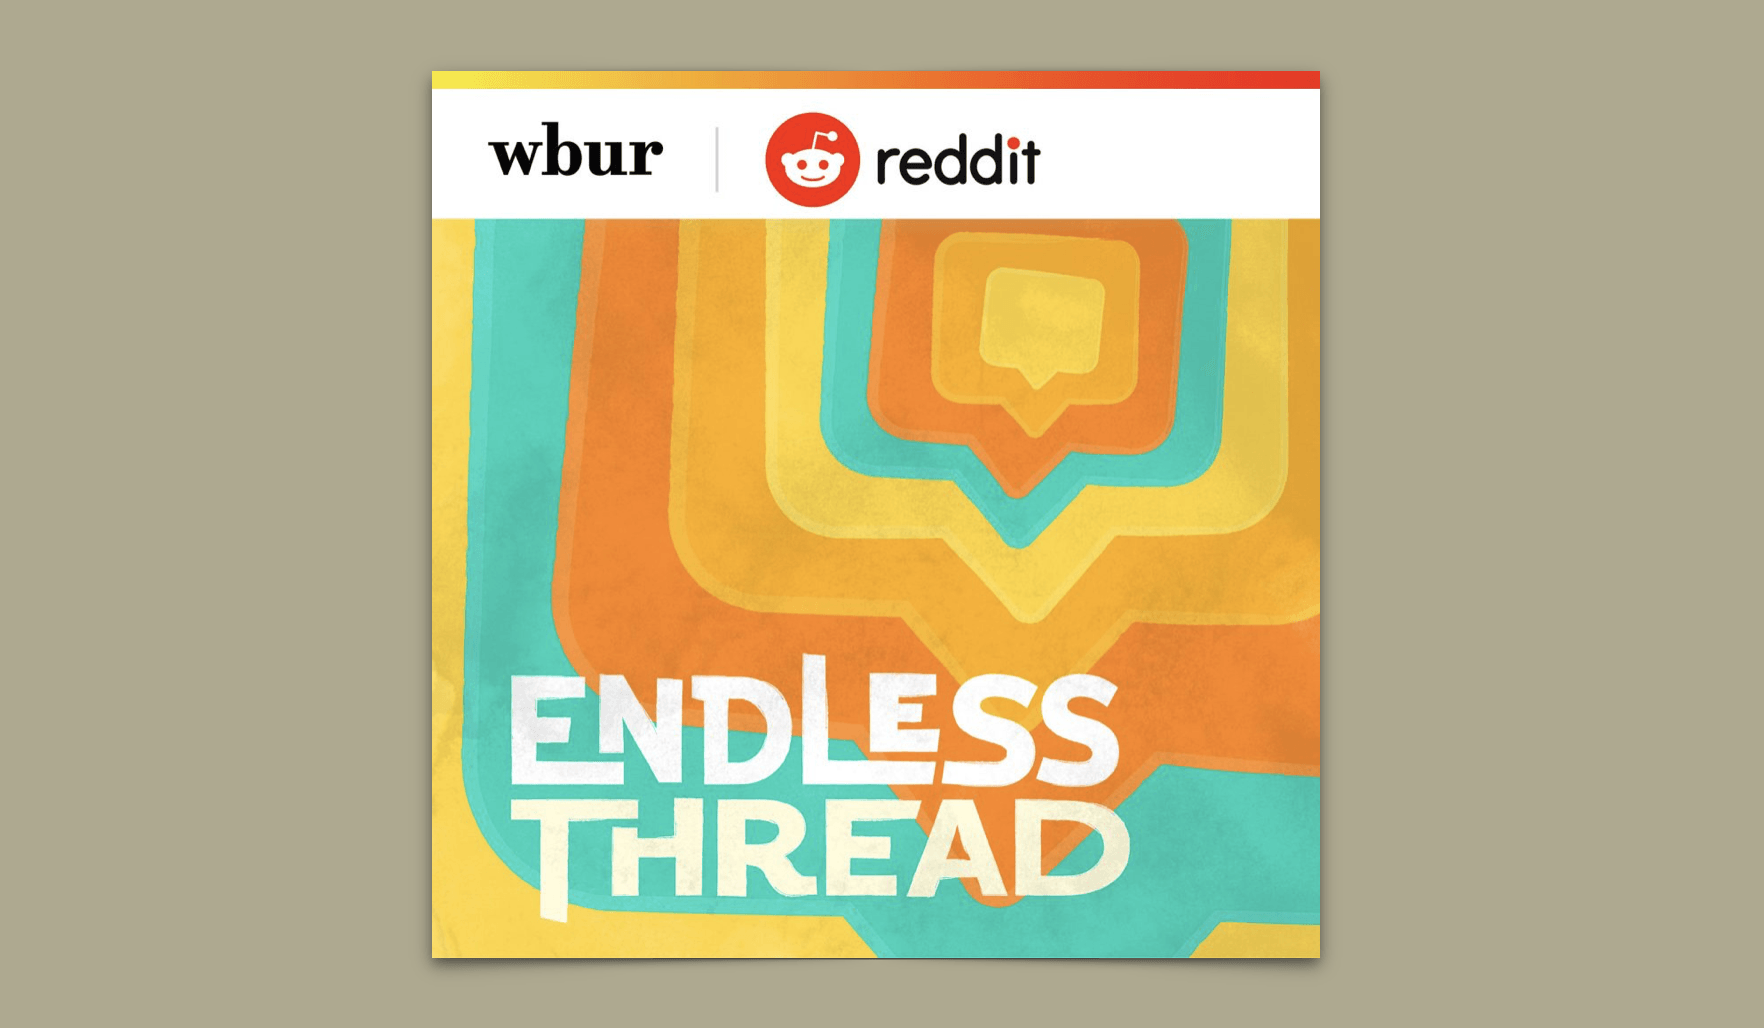 Reddit Endless Thread Logo